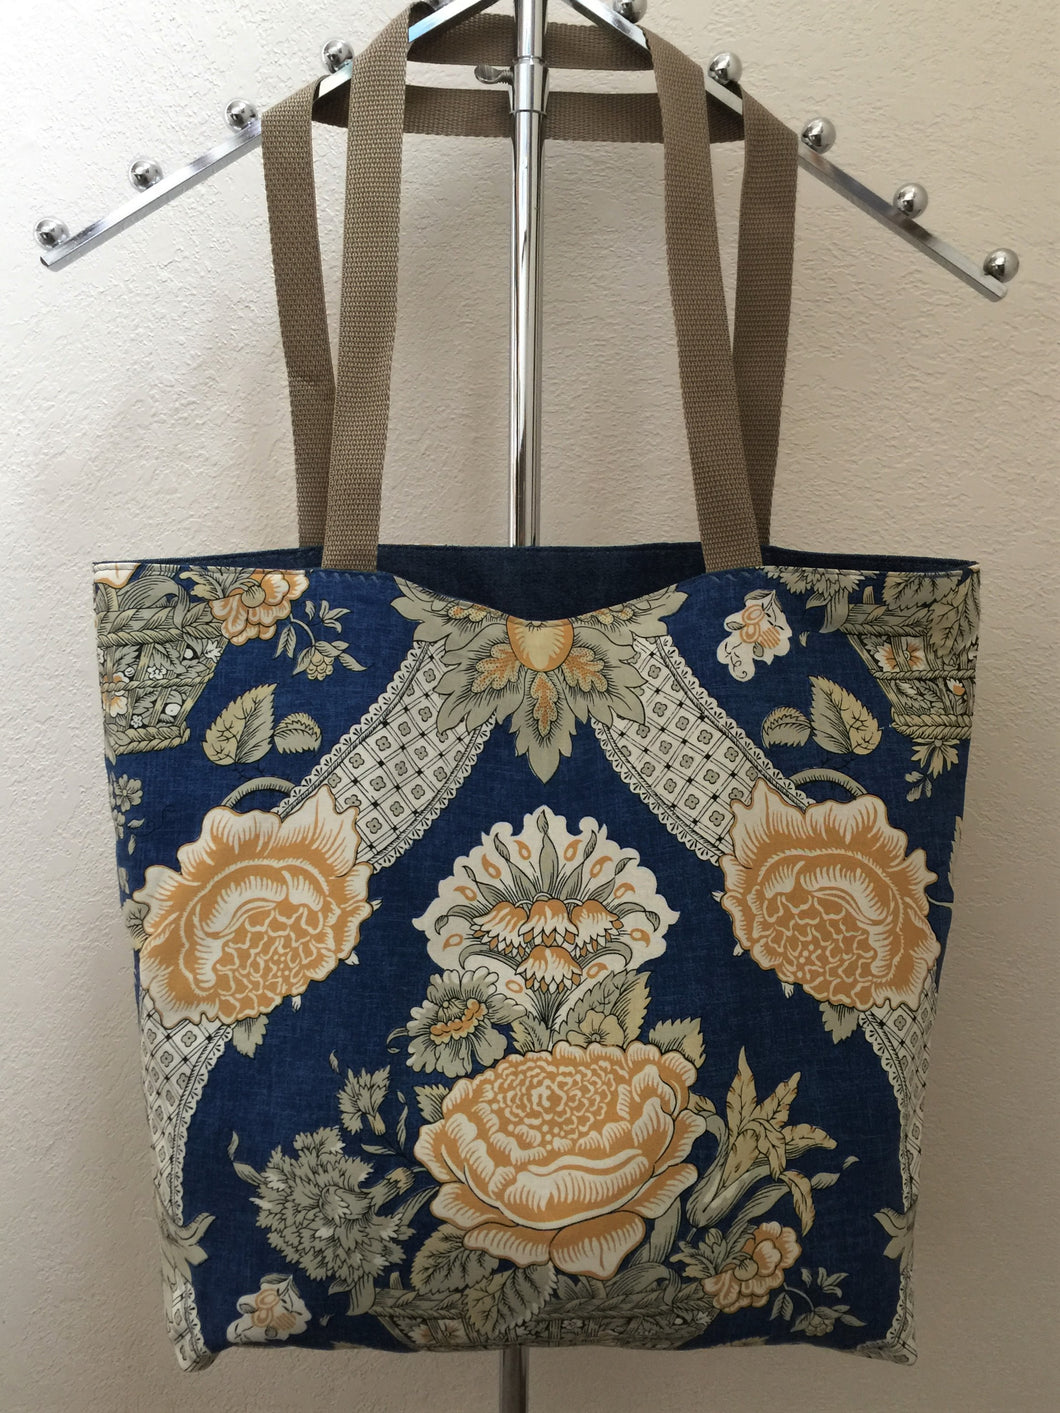 Tan and Gold Flowers in Basket on Blue Denim